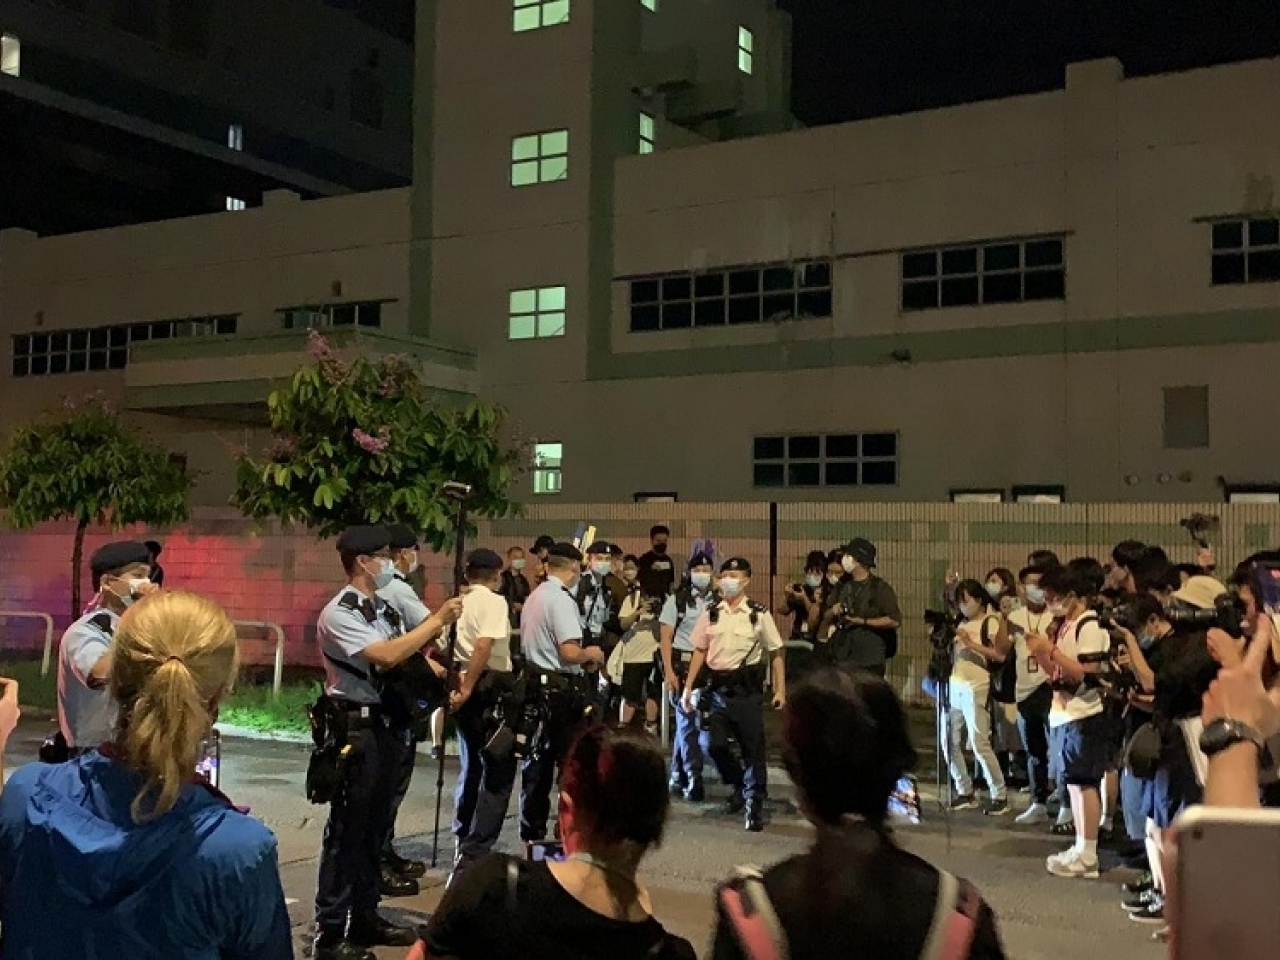 Earlier, police turned at Next Digital's headquarters in Tseung Kwan O carrying warning flags. Photo: RTHK